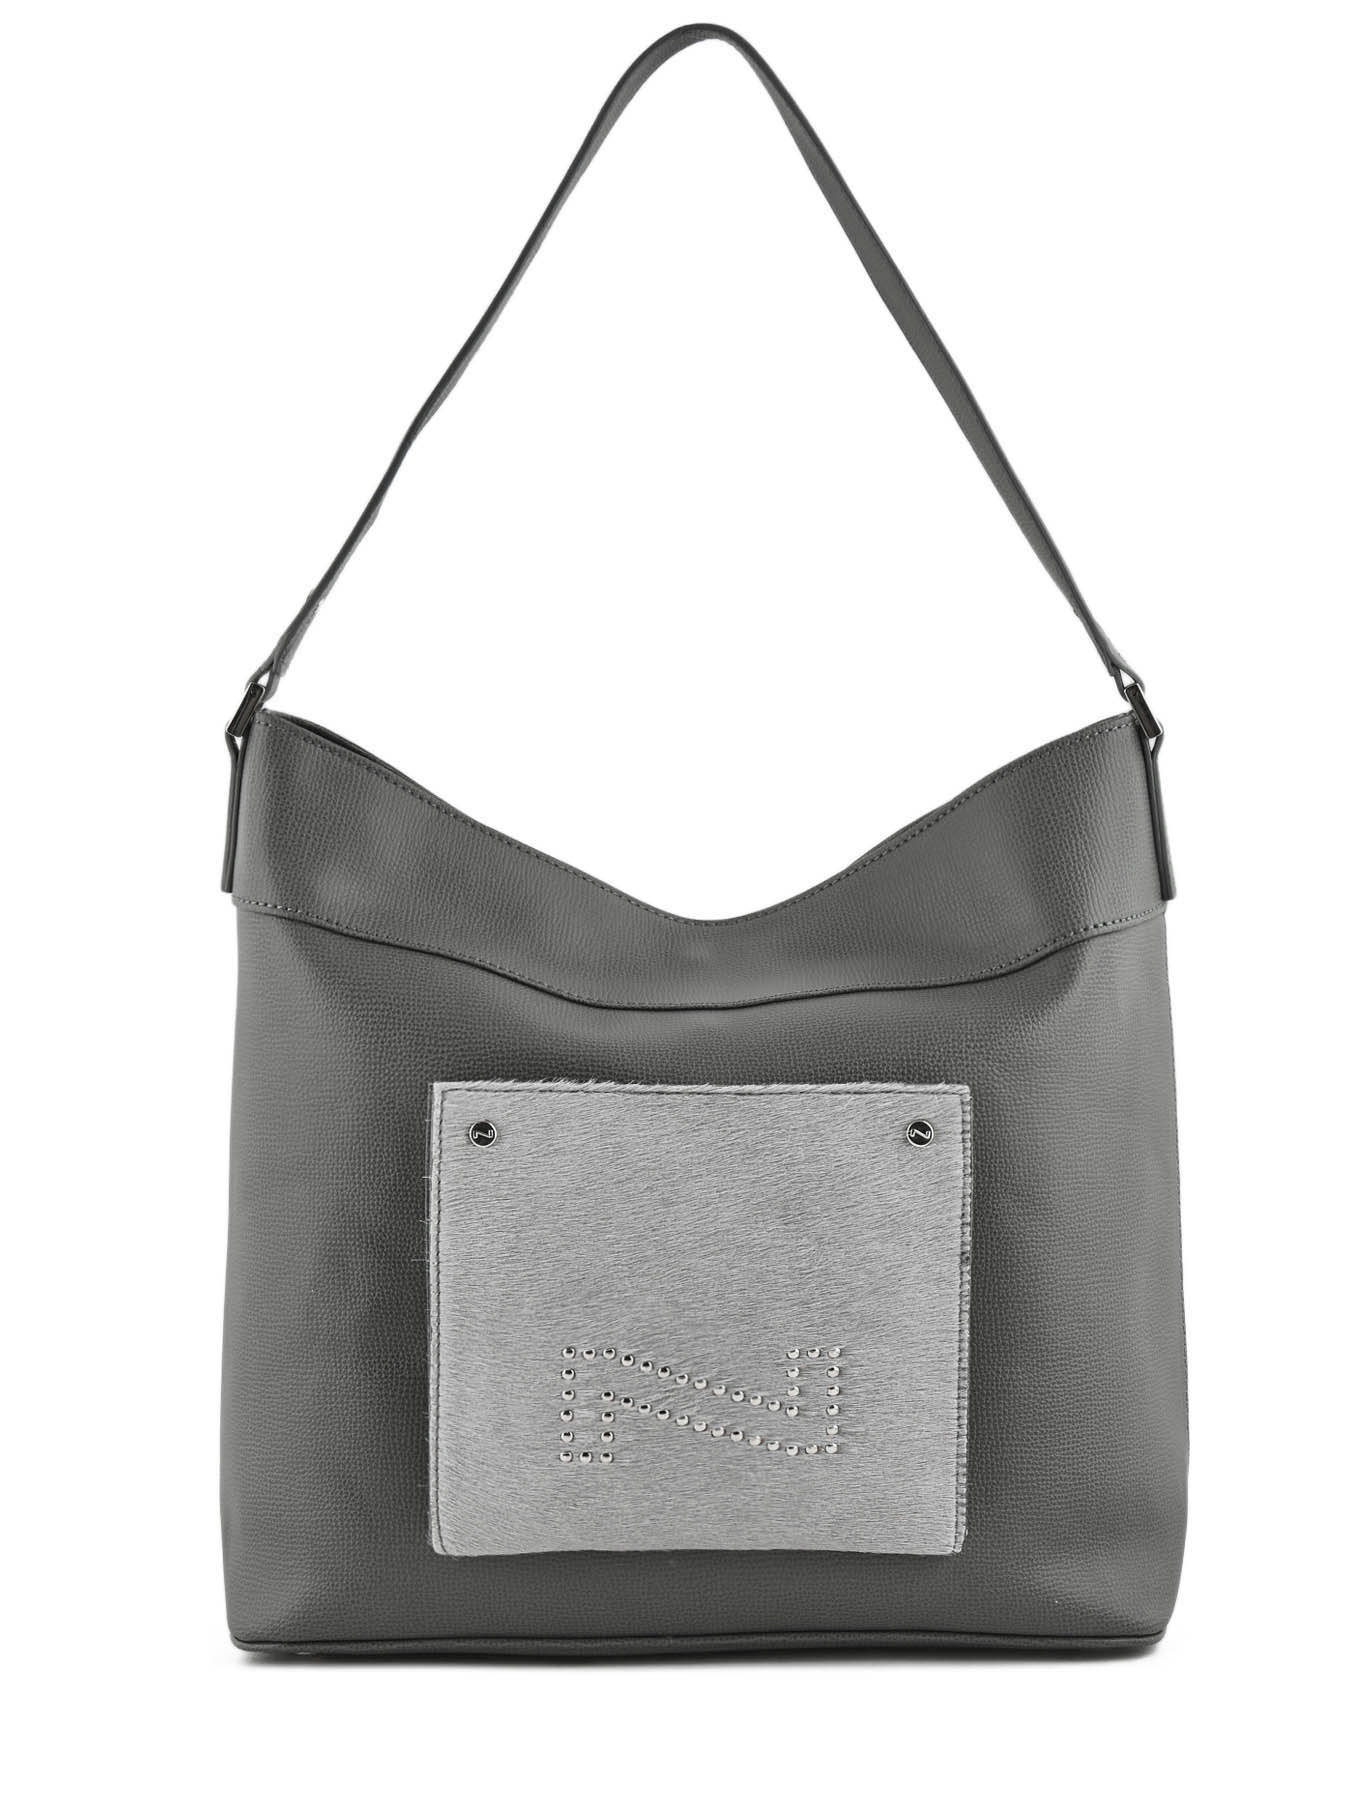 7630728e61 ... other view 4  Shoulder Bag Opale Leather Nathan baume Gray pixel  N1820715 ...